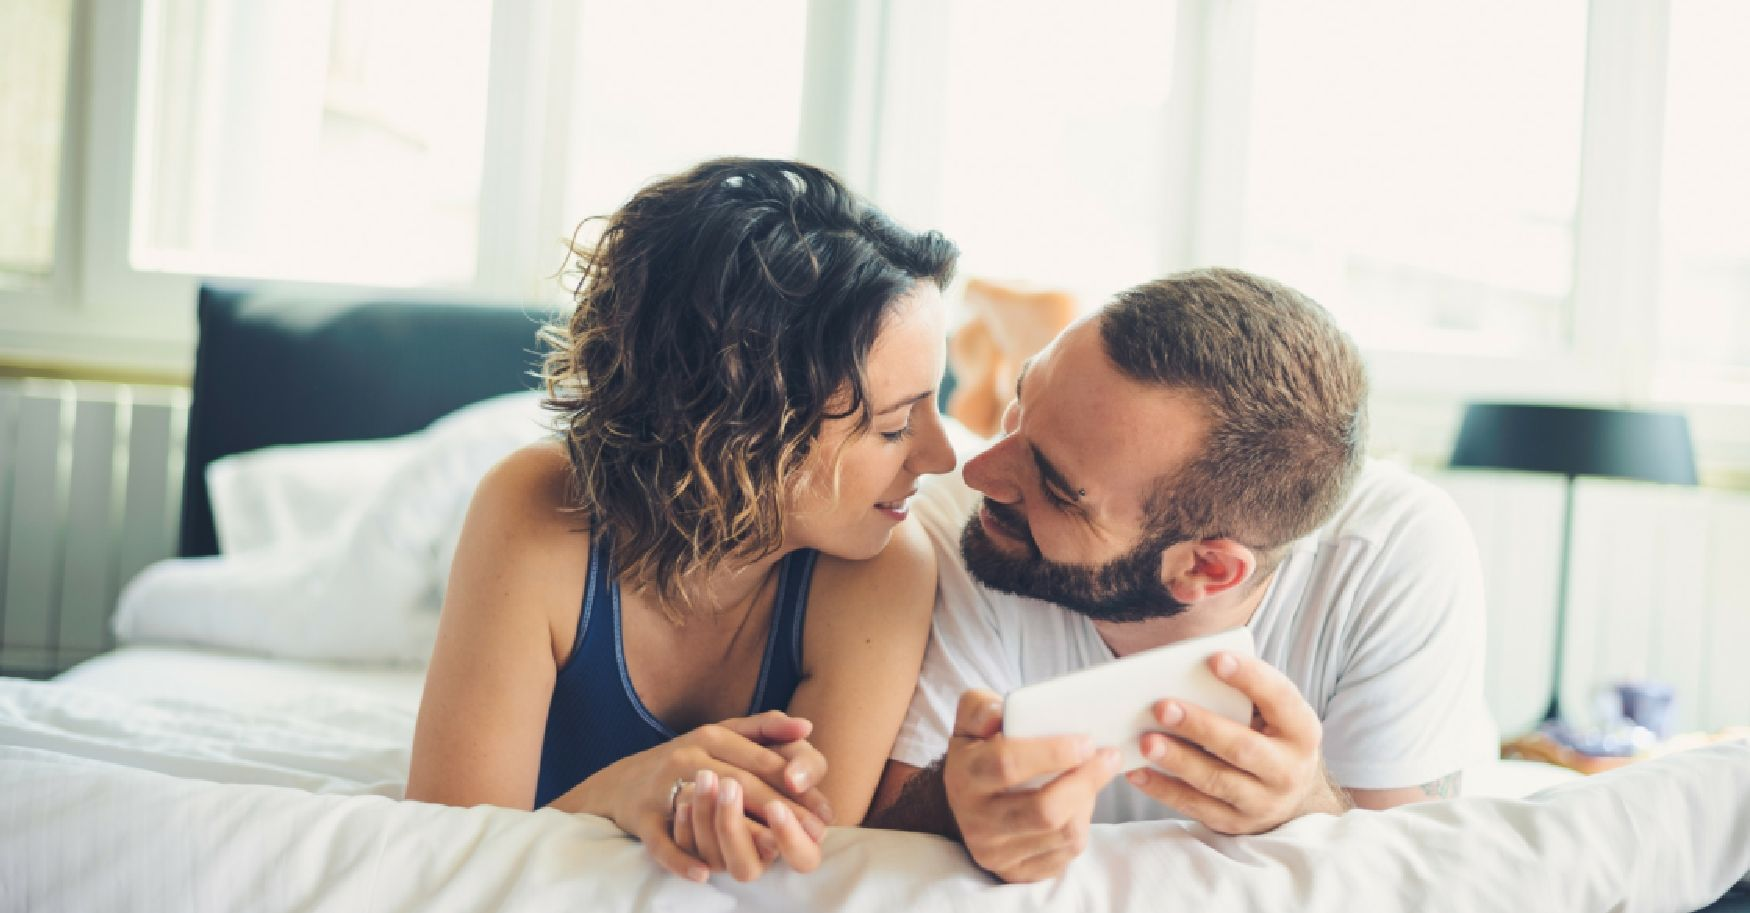 udate dating service